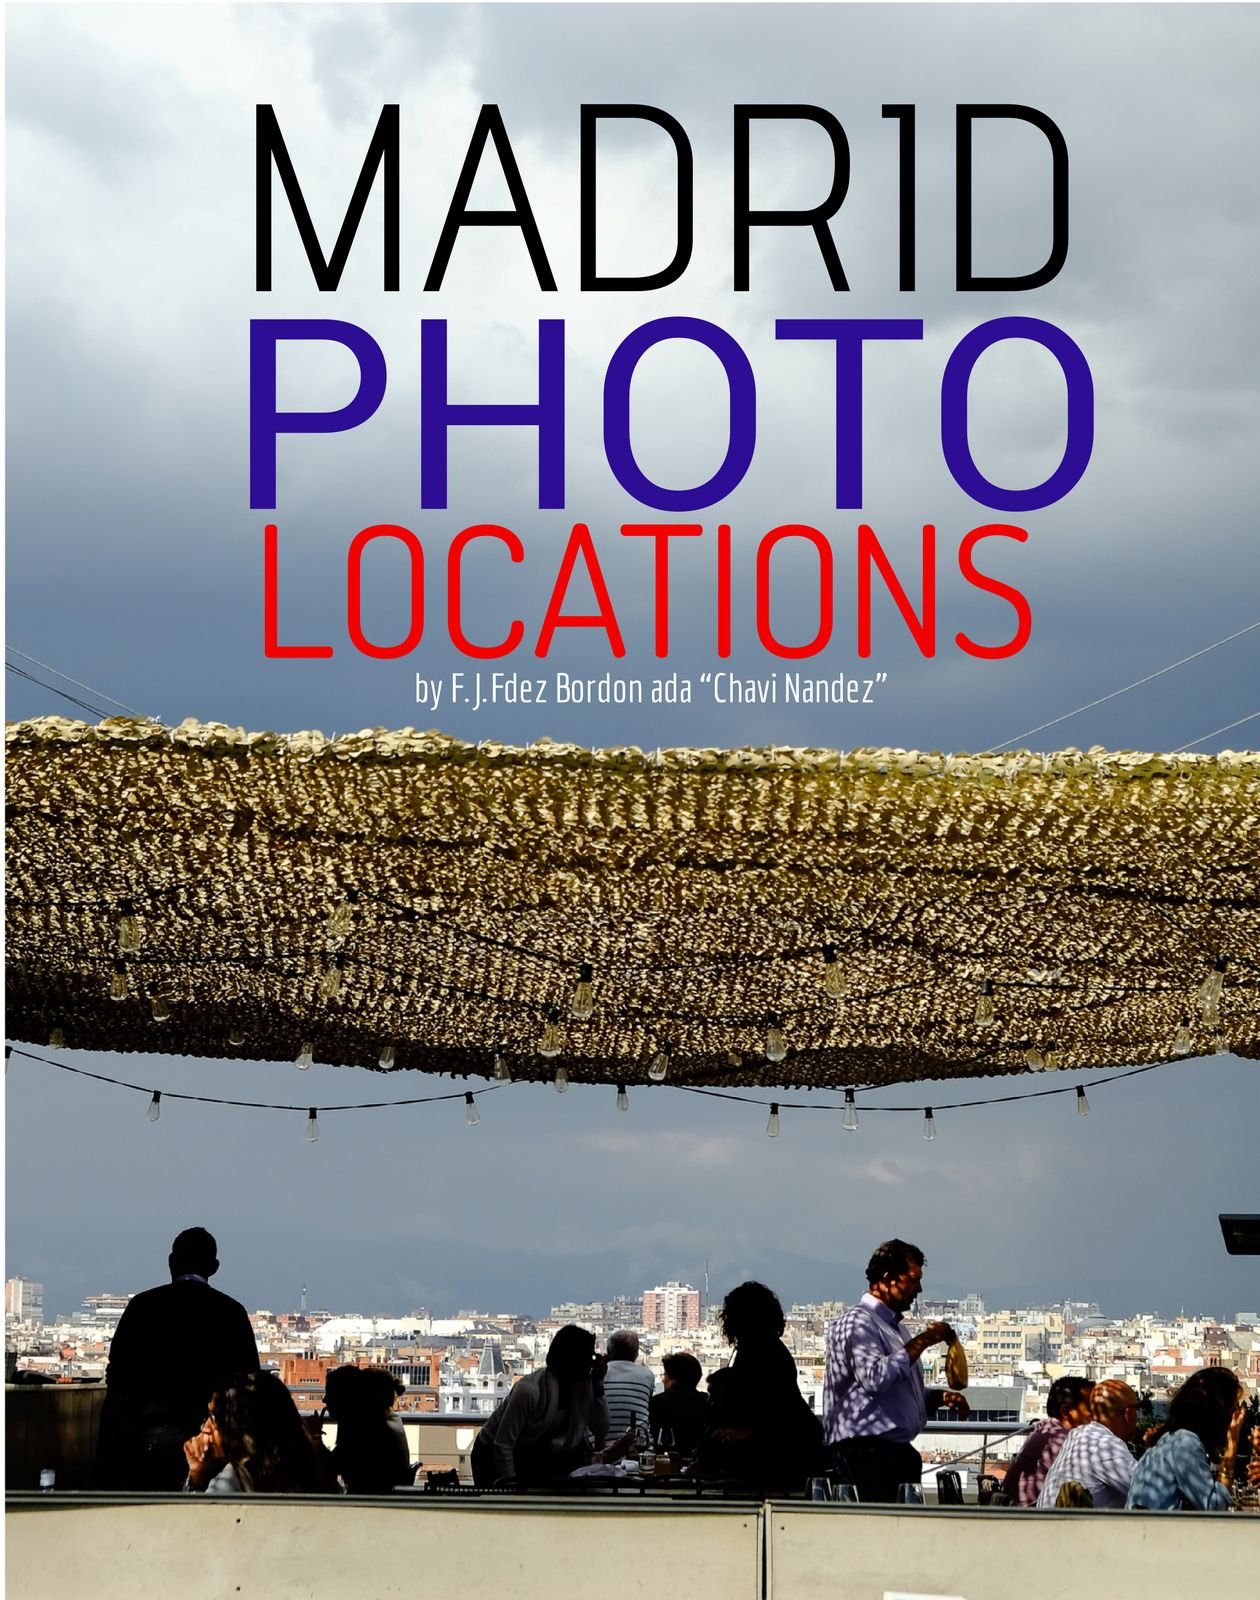 A nice collection of Madrid cityscape moments with architecture places, markets and singular views of Madrid lifestyle.